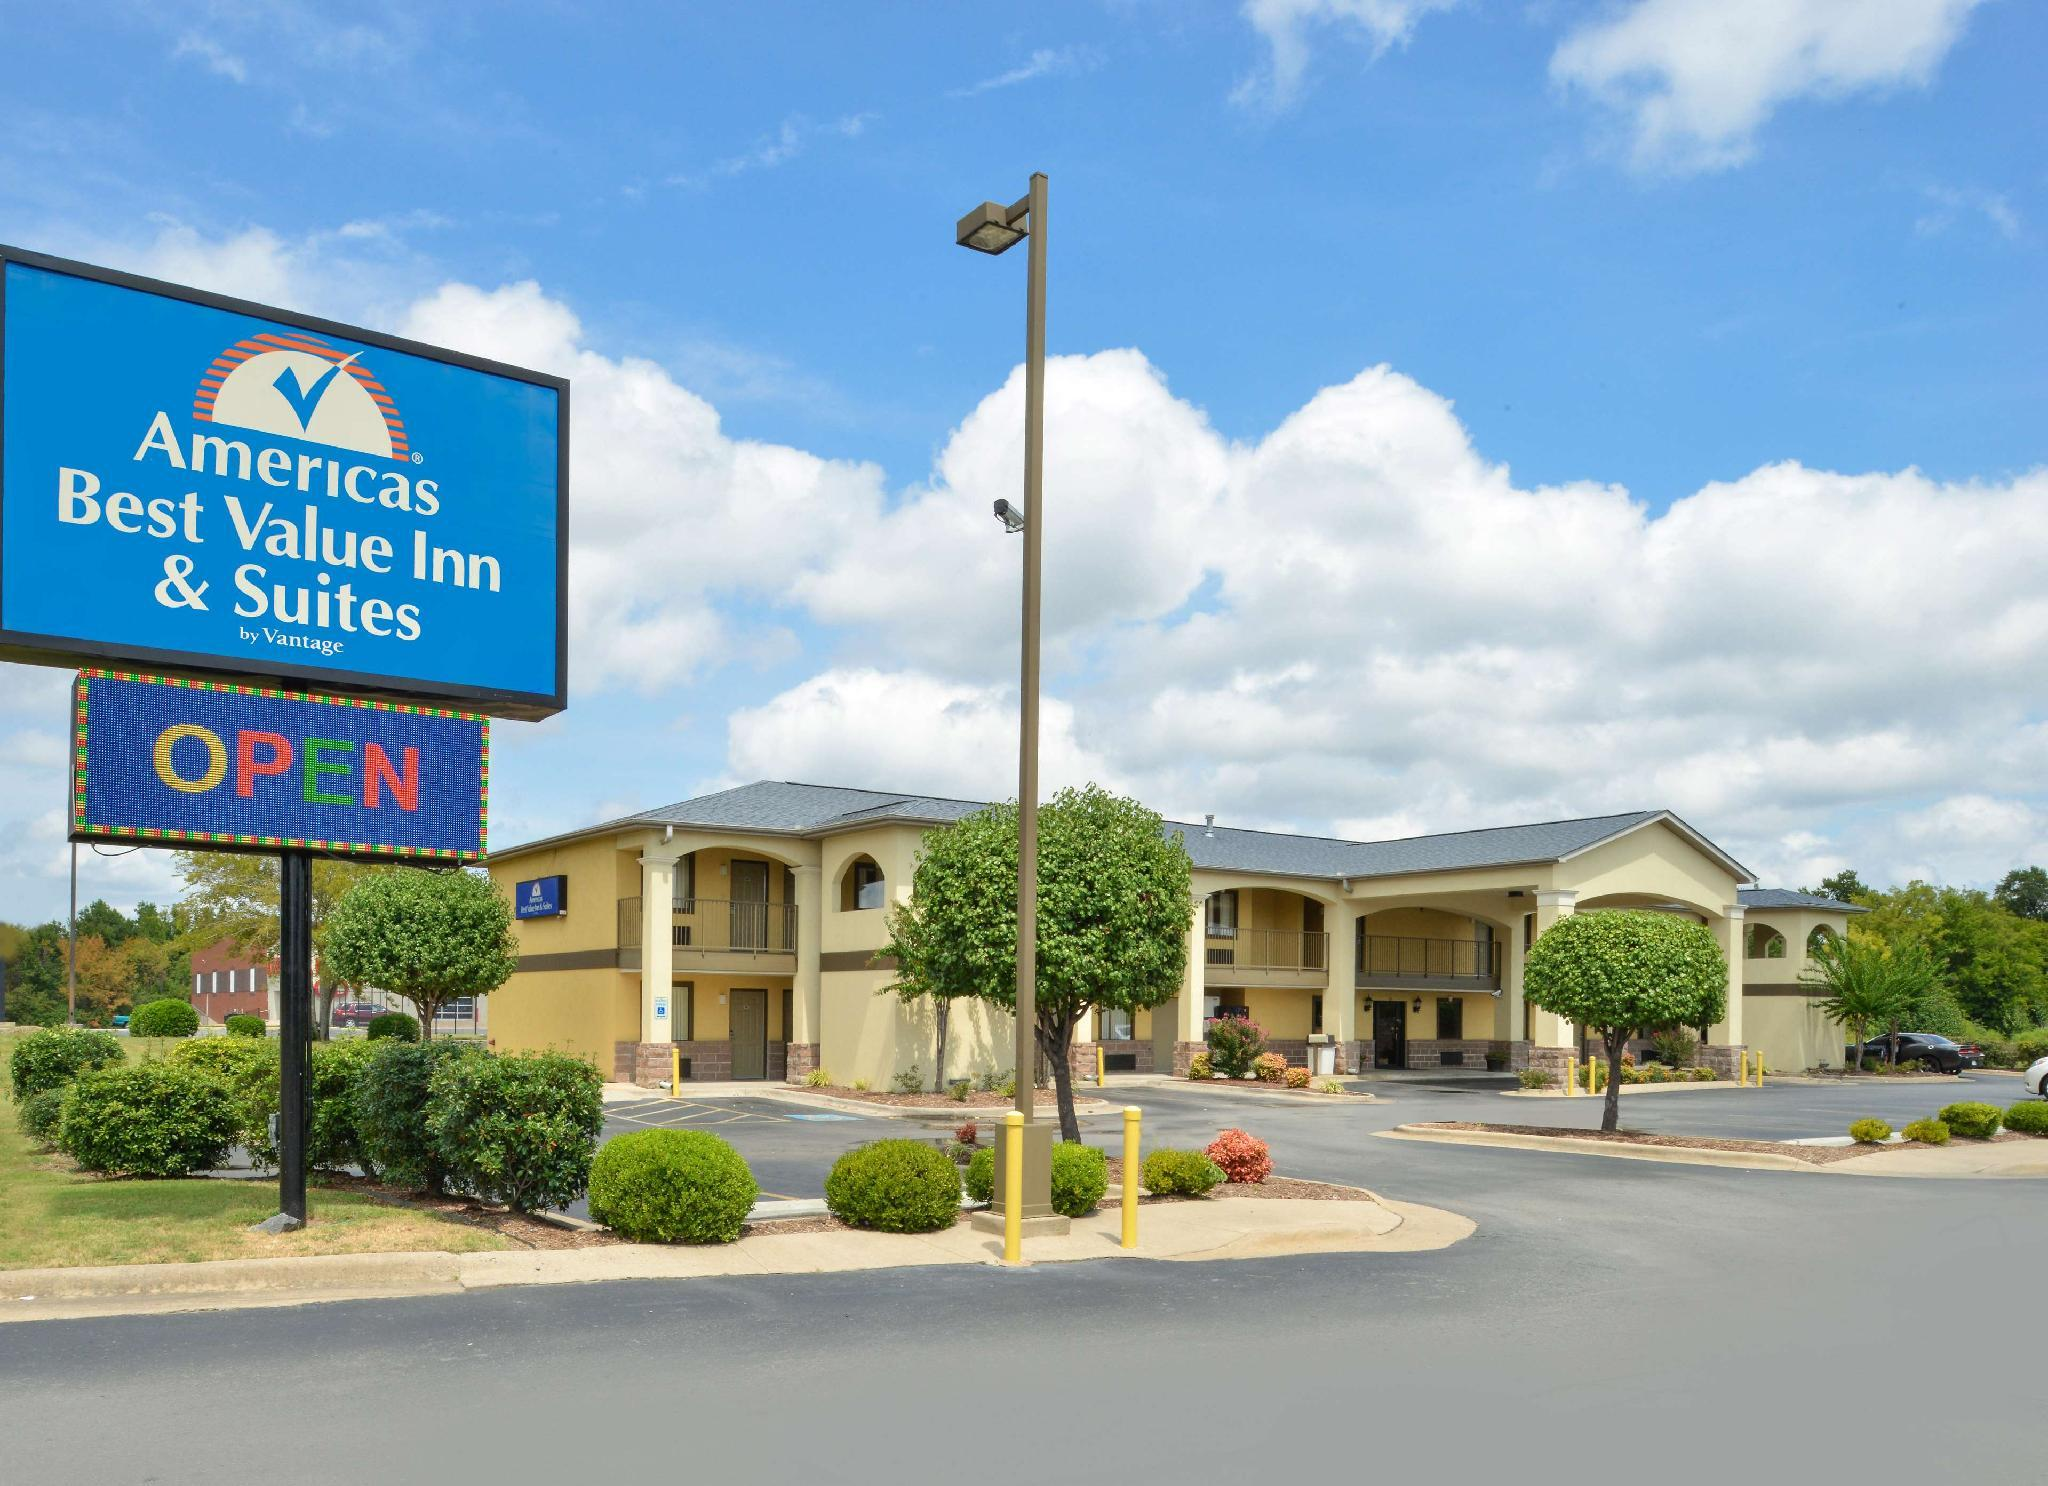 Americas Best Value Inn And Suites University Ave